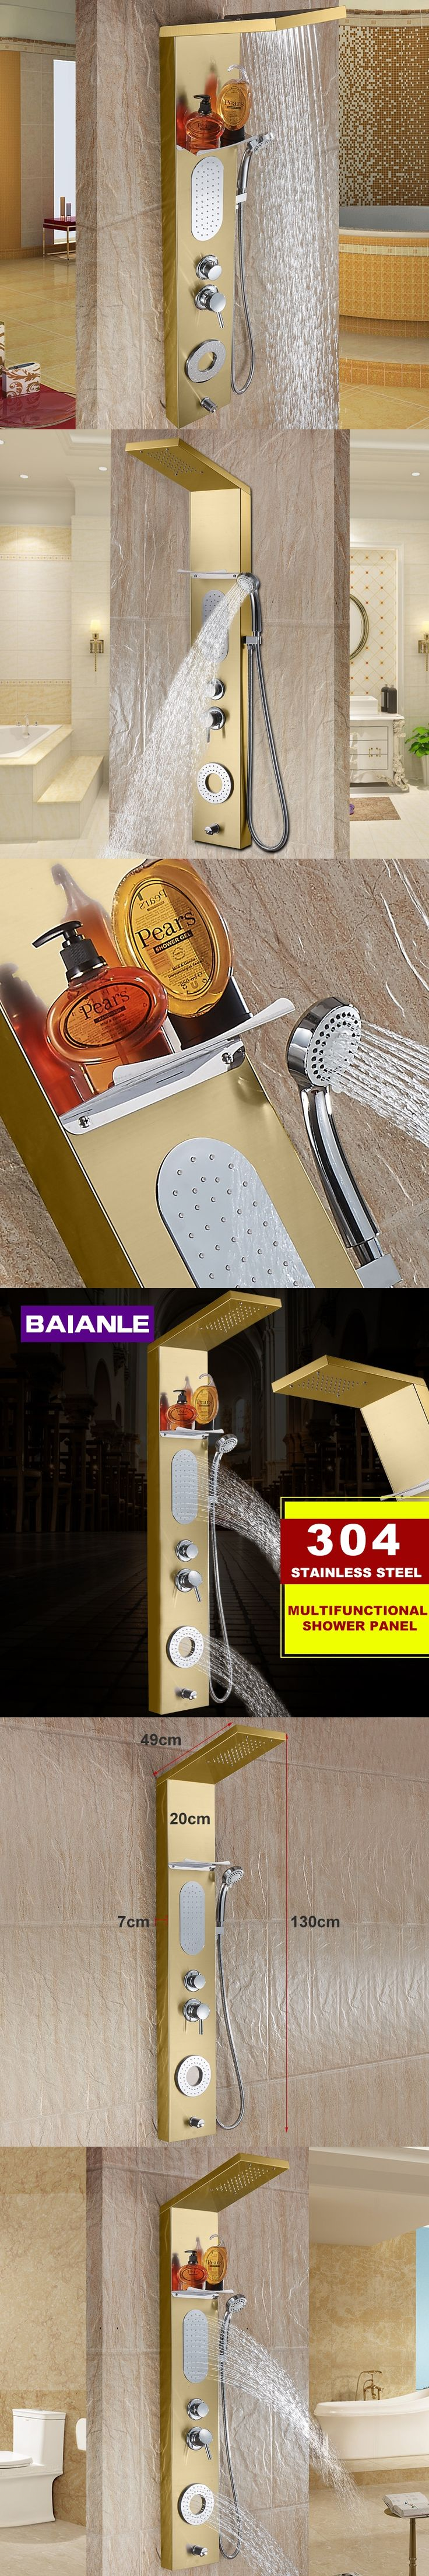 New Waterfall gold Fashion Luxury Shower Column Shower Panel Hand Shower Massage Jets Stainless steel Plate Shower Faucet